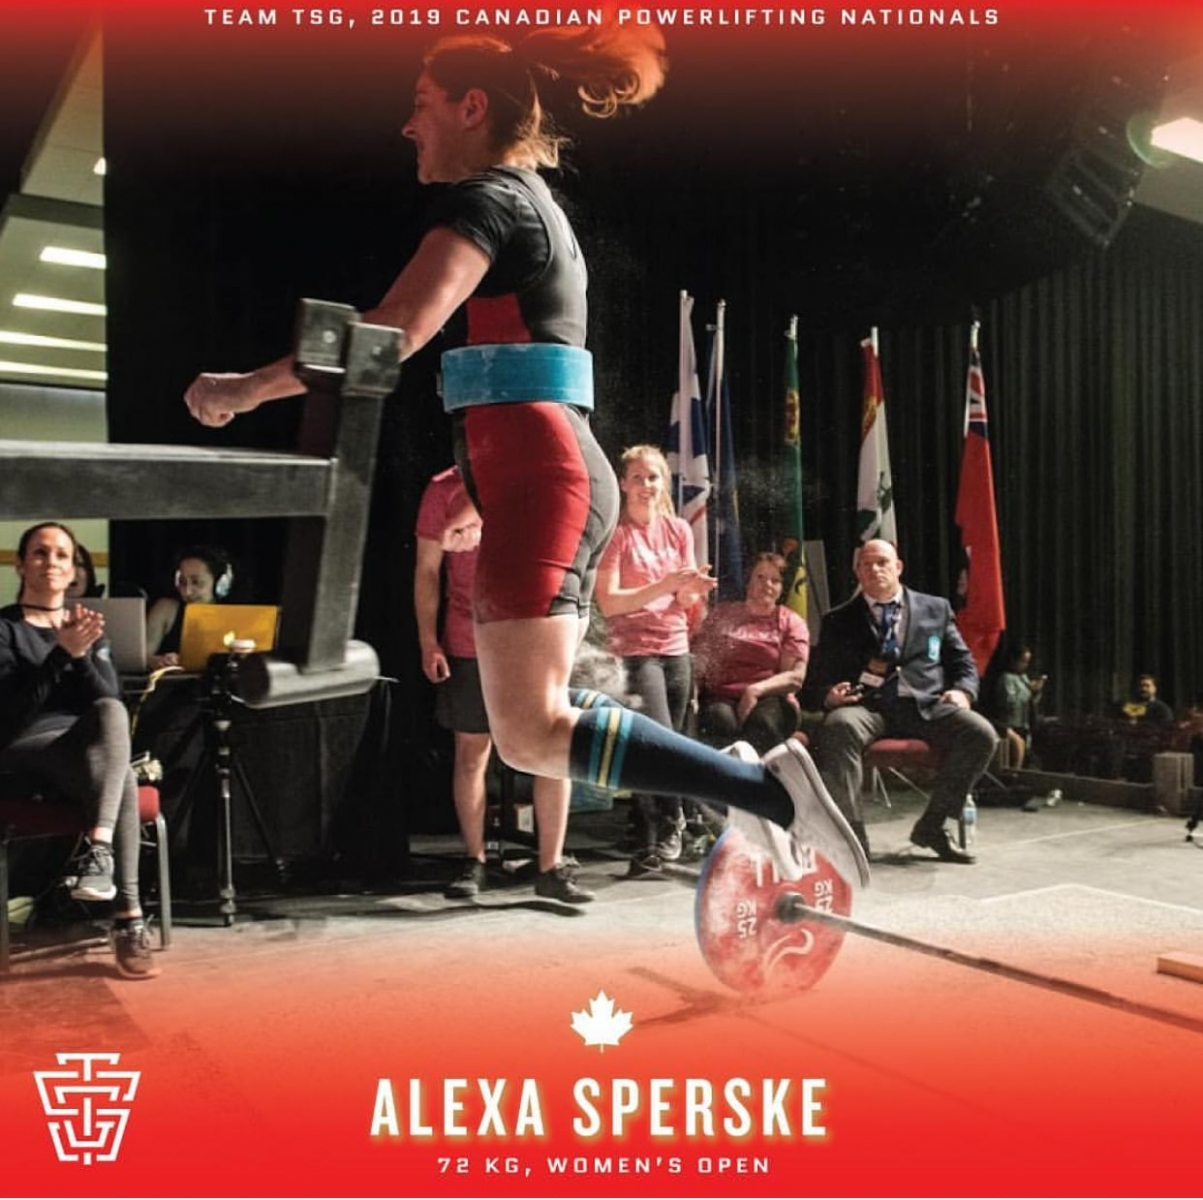 CPU Nationals 2019 Alexa Sperske